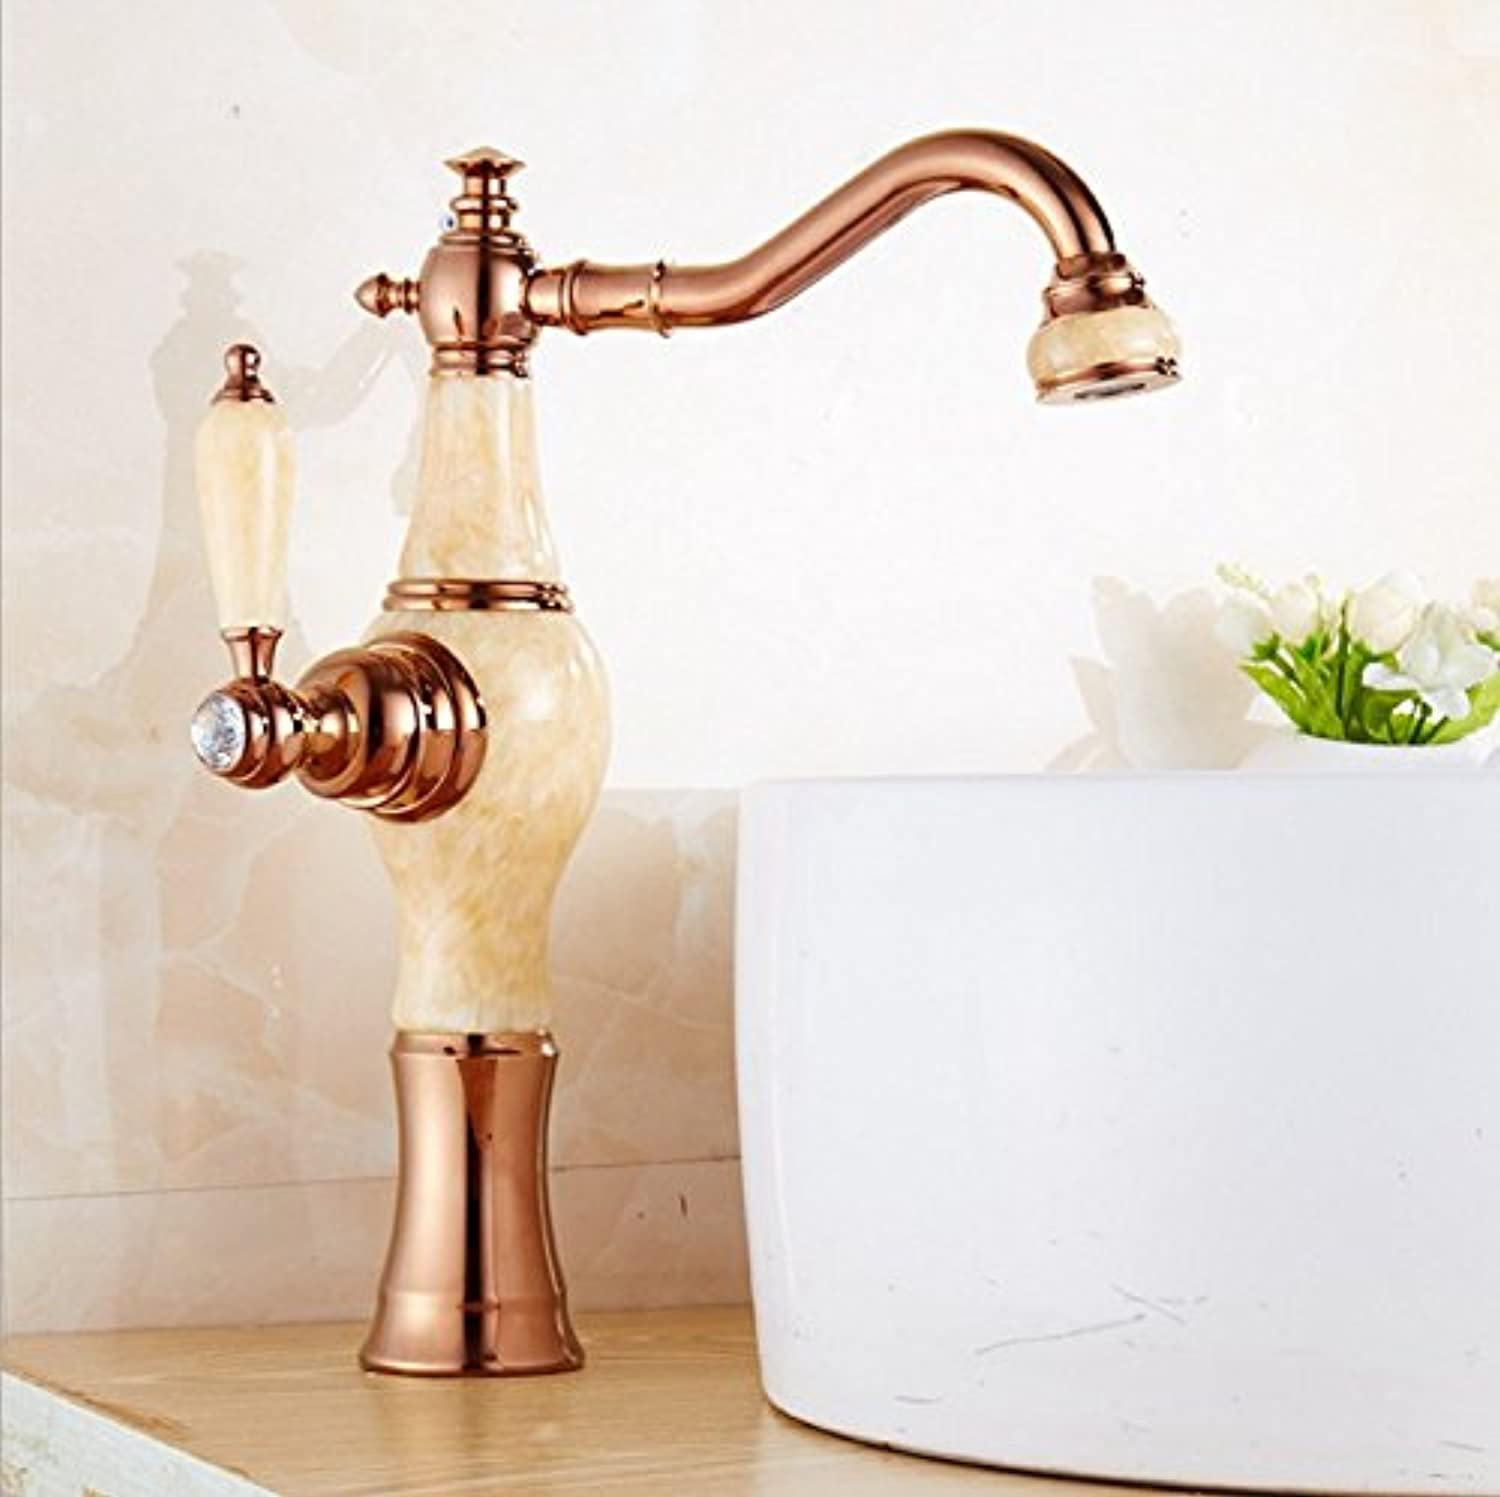 Hlluya Professional Sink Mixer Tap Kitchen Faucet Basin faucet hot and cold marble full copper gold, pink gold Topaz